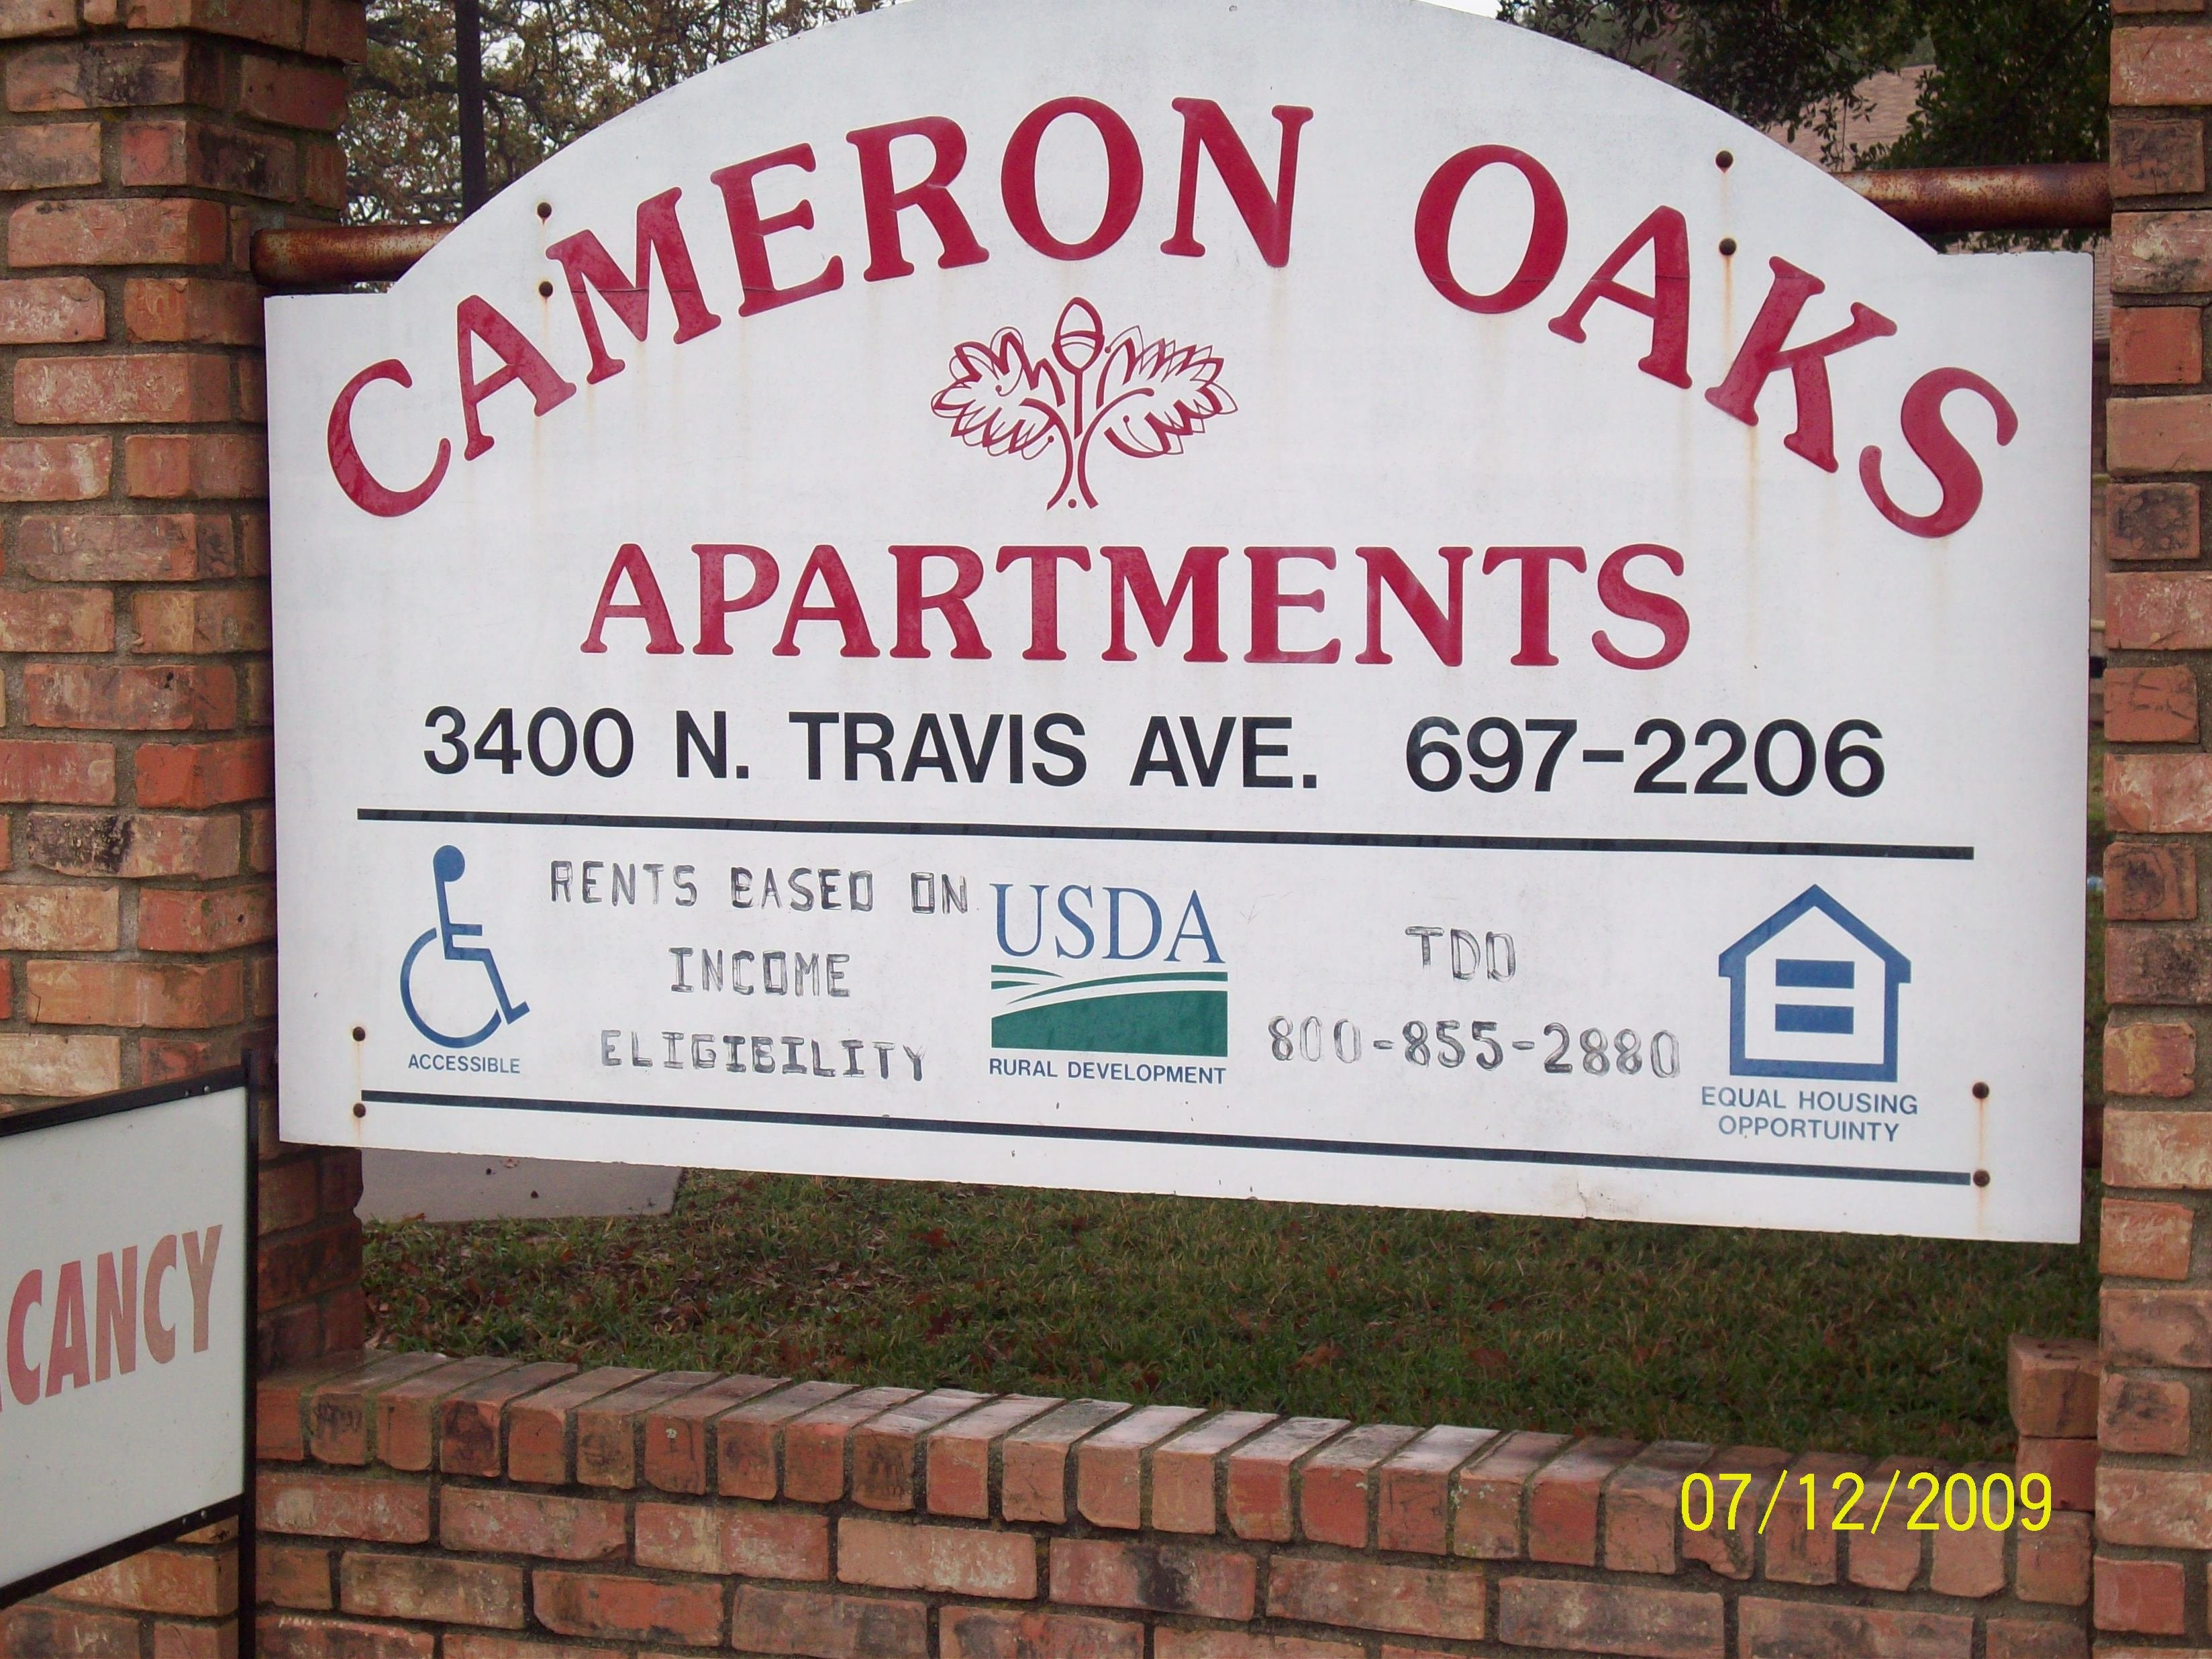 Cameron Oaks Apartments